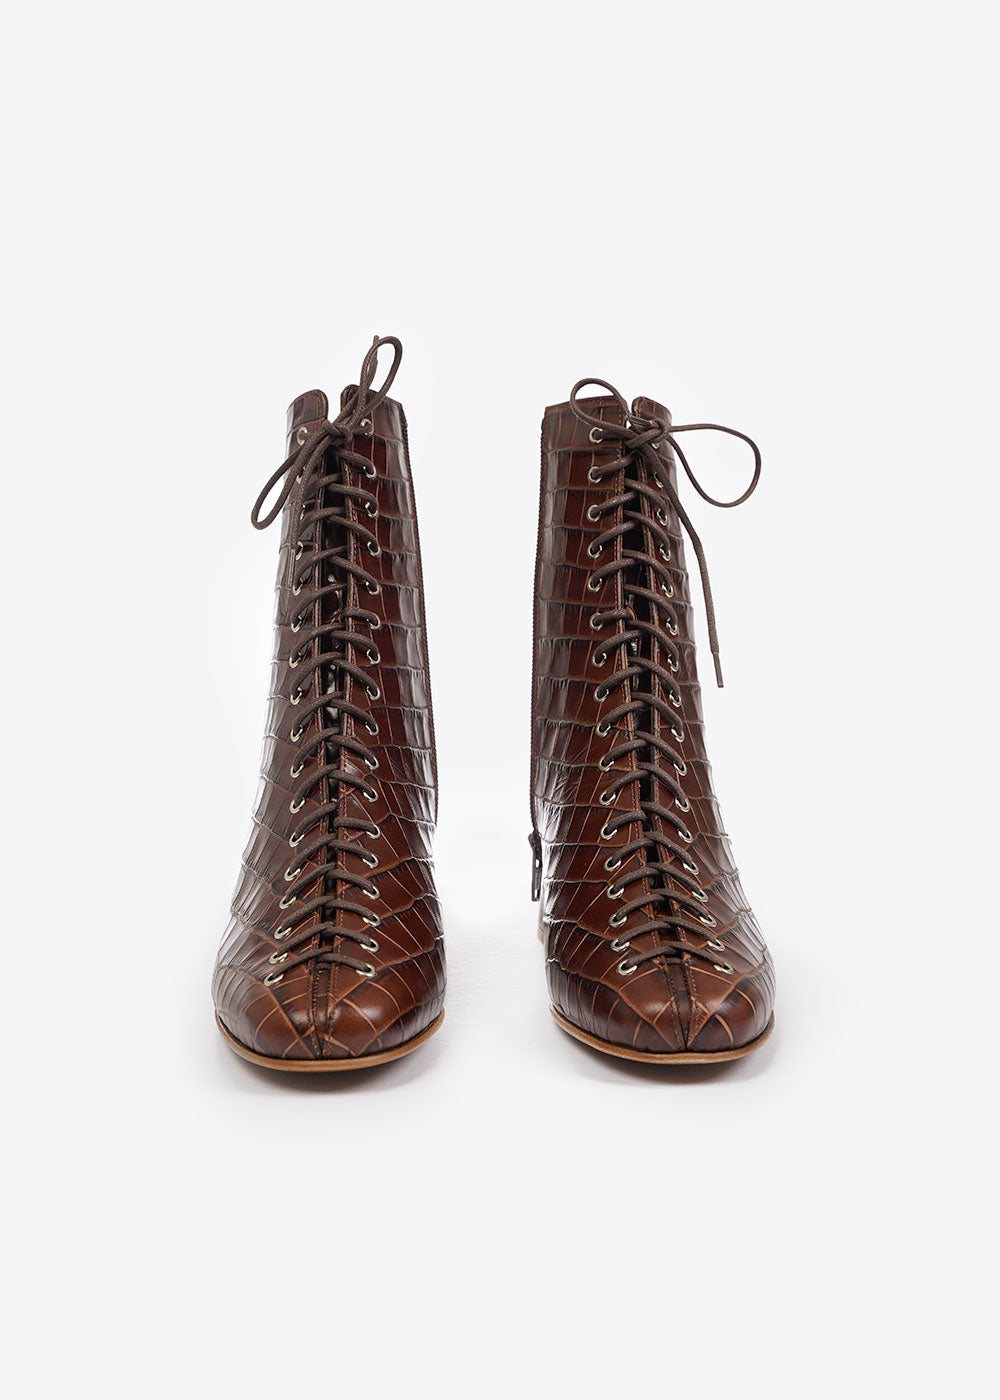 BY FAR Nutella Becca Boots — Shop sustainable fashion and slow fashion at New Classics Studios